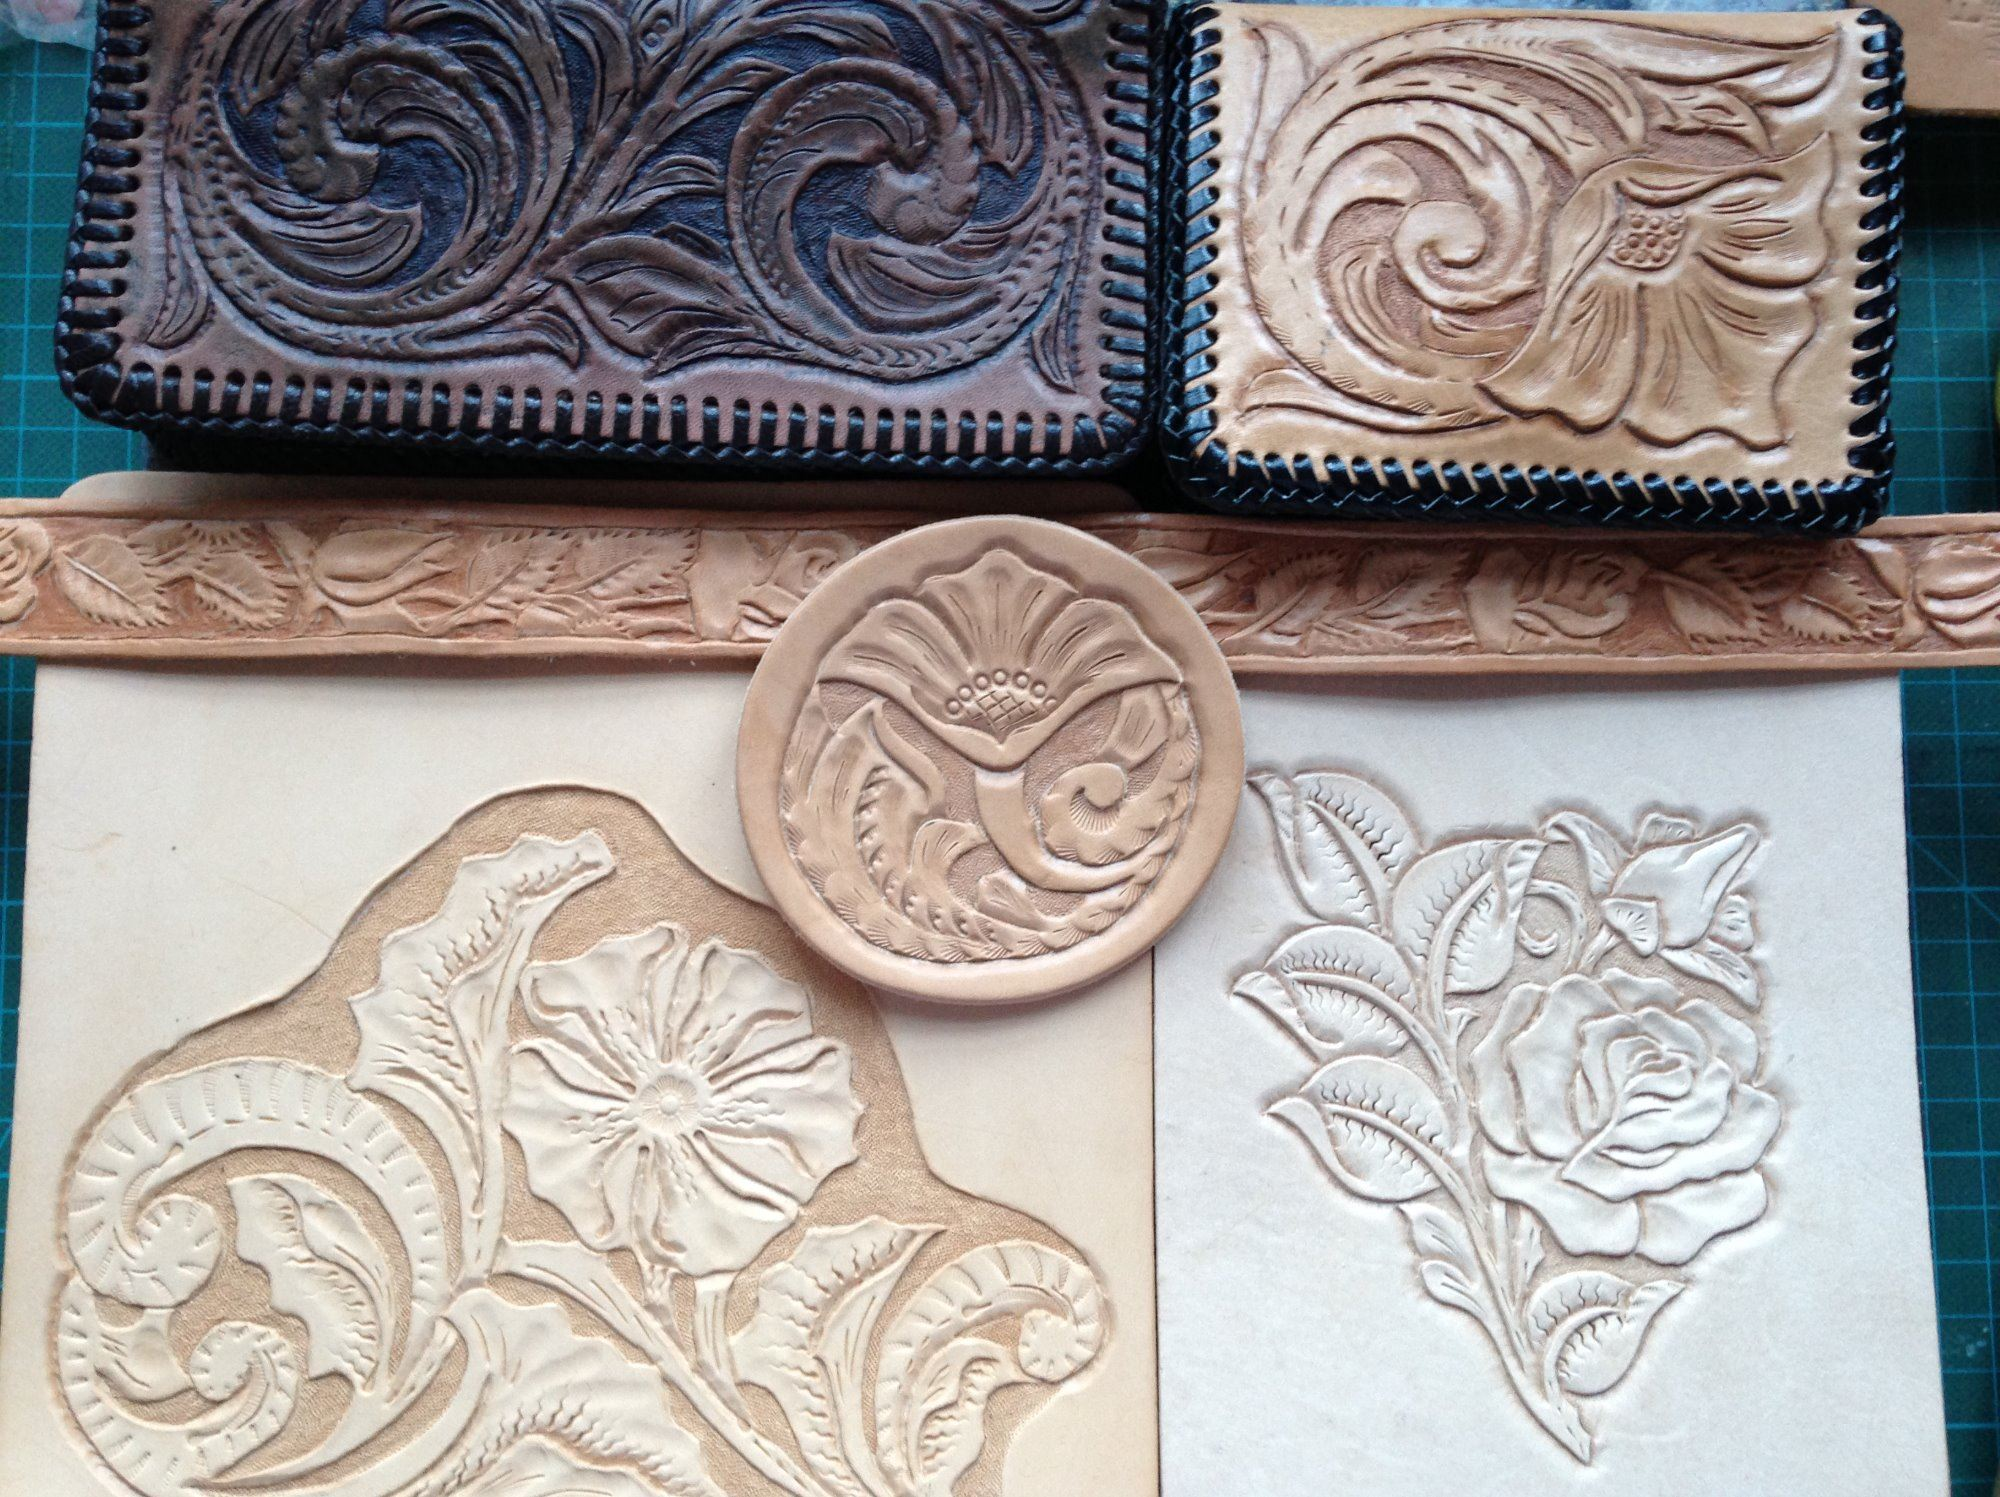 Learning to carve and tool leather